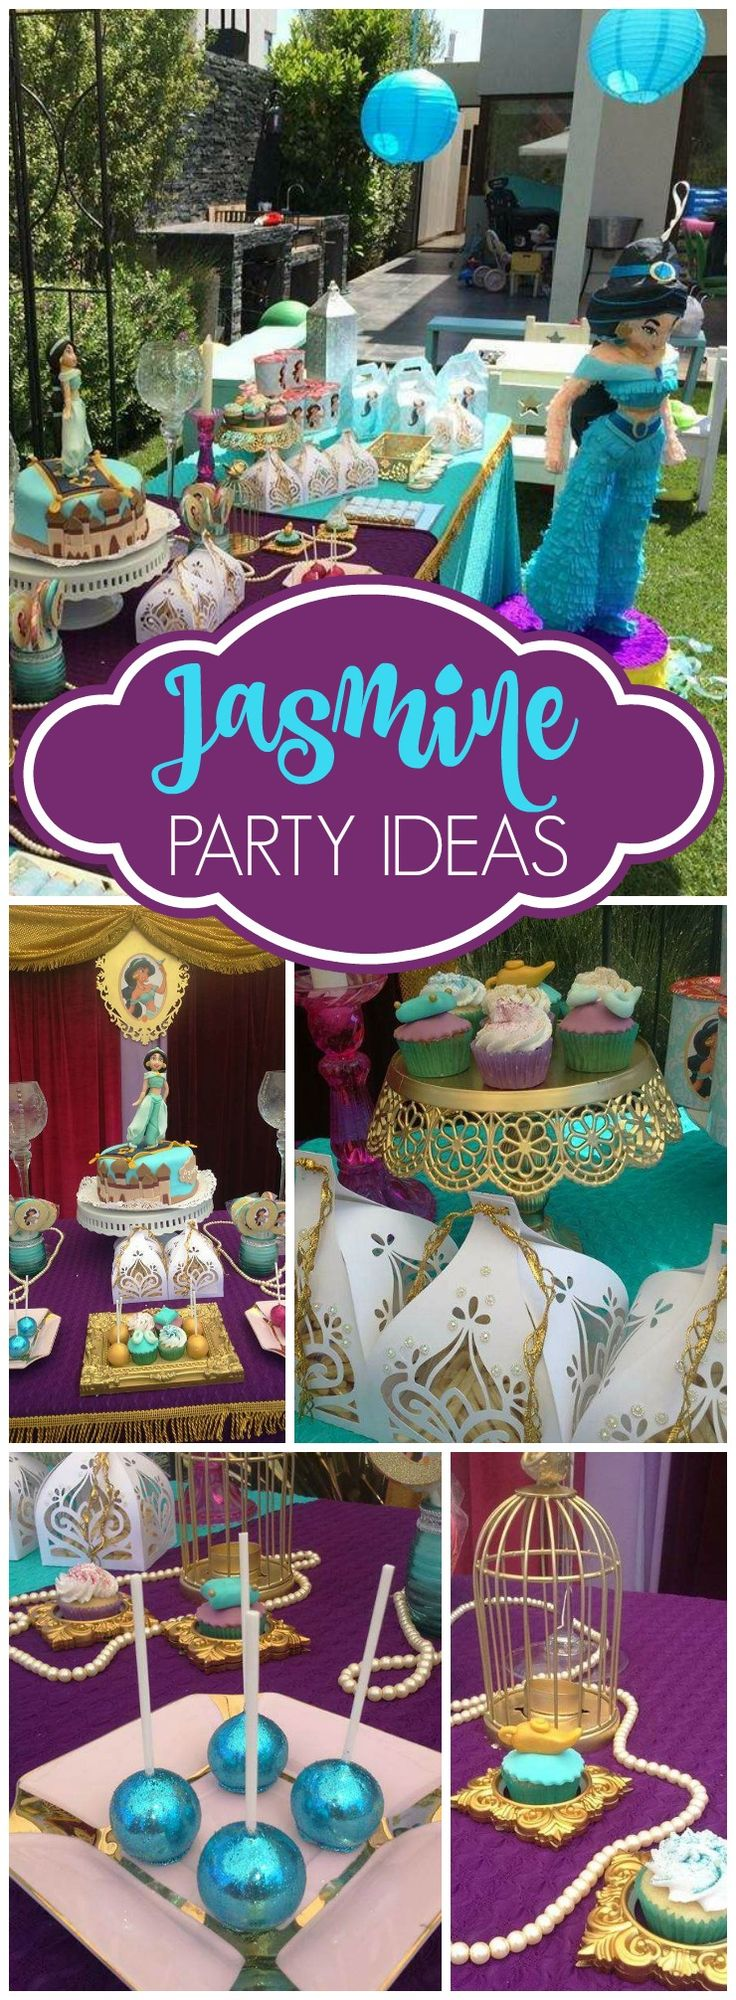 "Princess Jasmin / Birthday ""Hermosa fiesta de princesas """